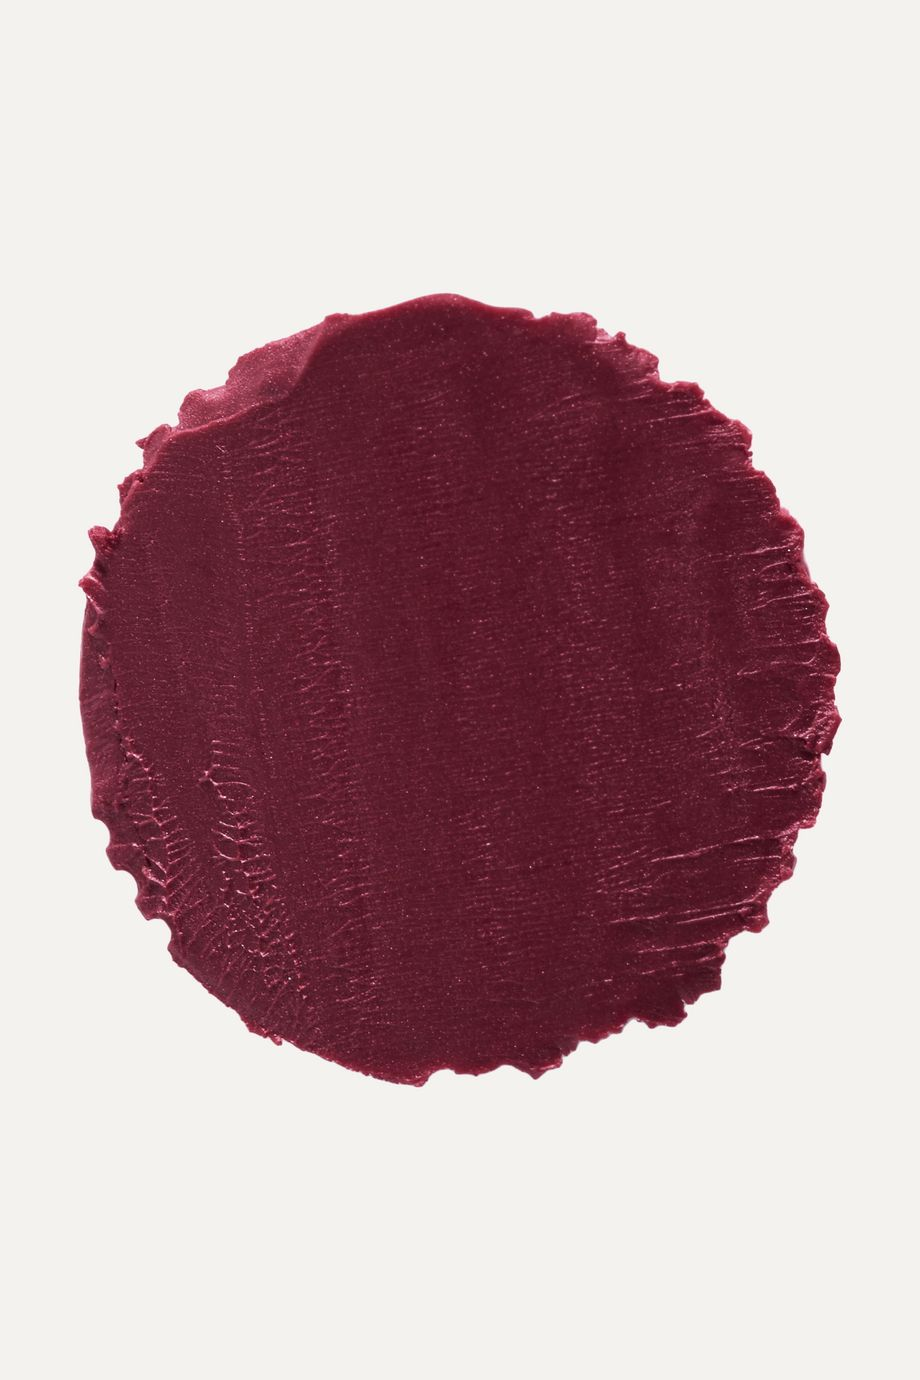 Burberry Beauty Burberry Kisses - Bright Plum No.101